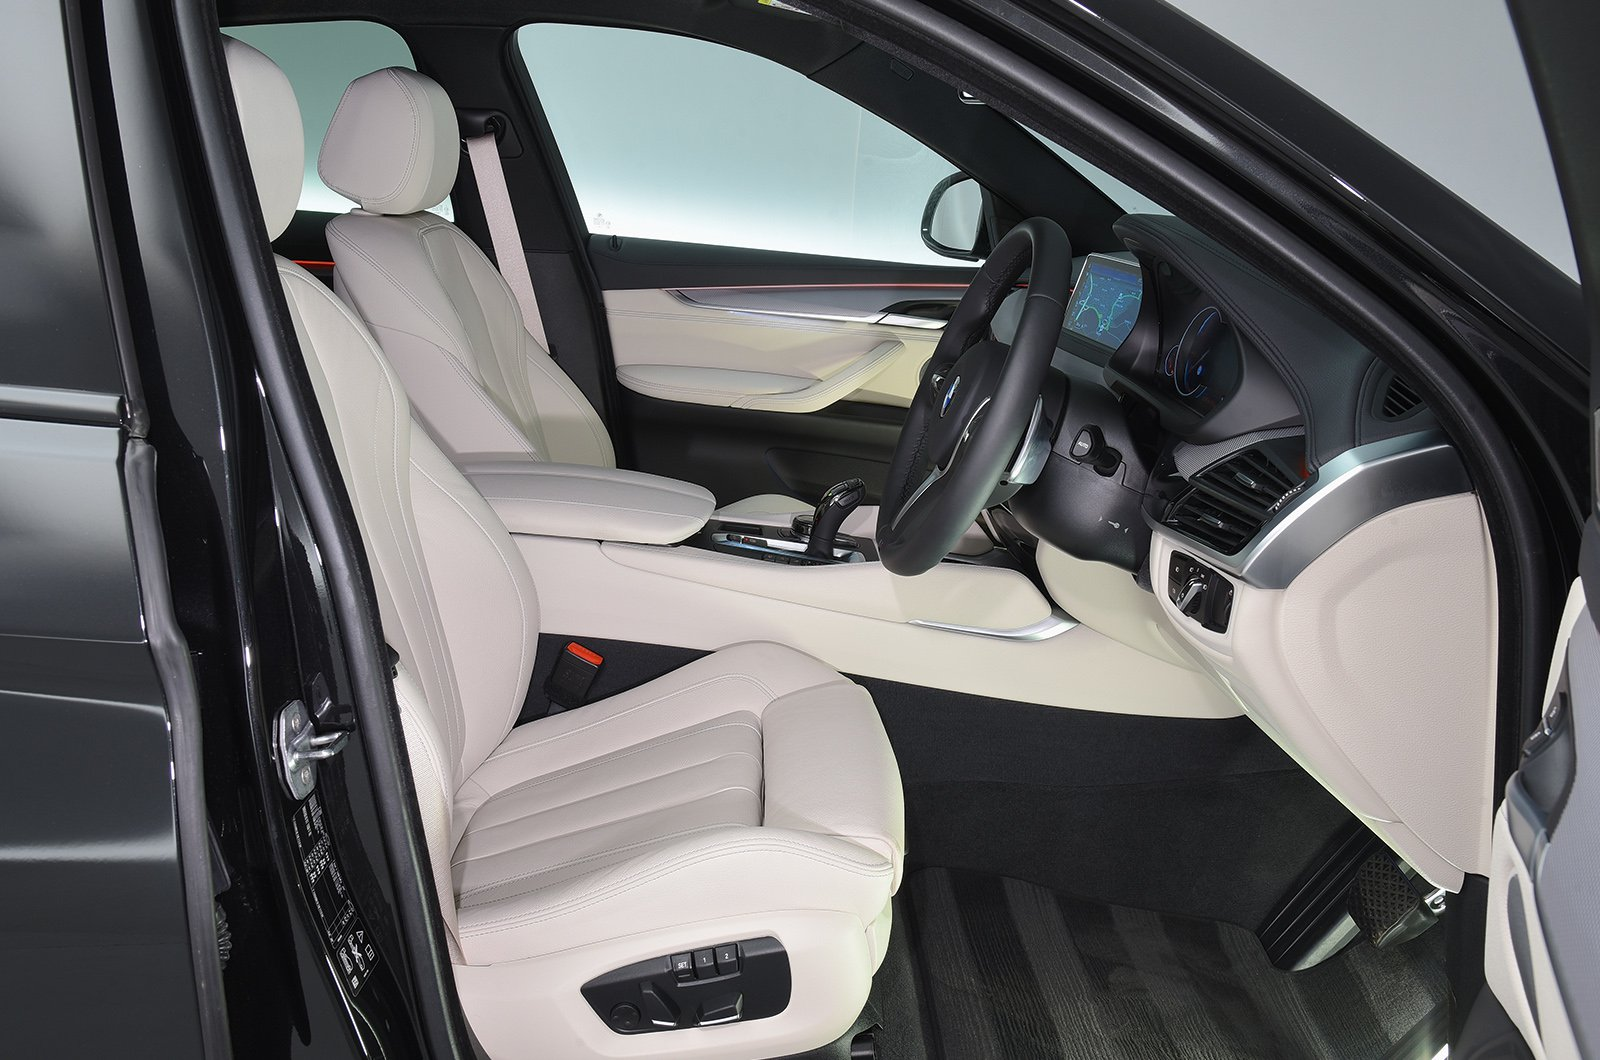 BMW X6 front seat